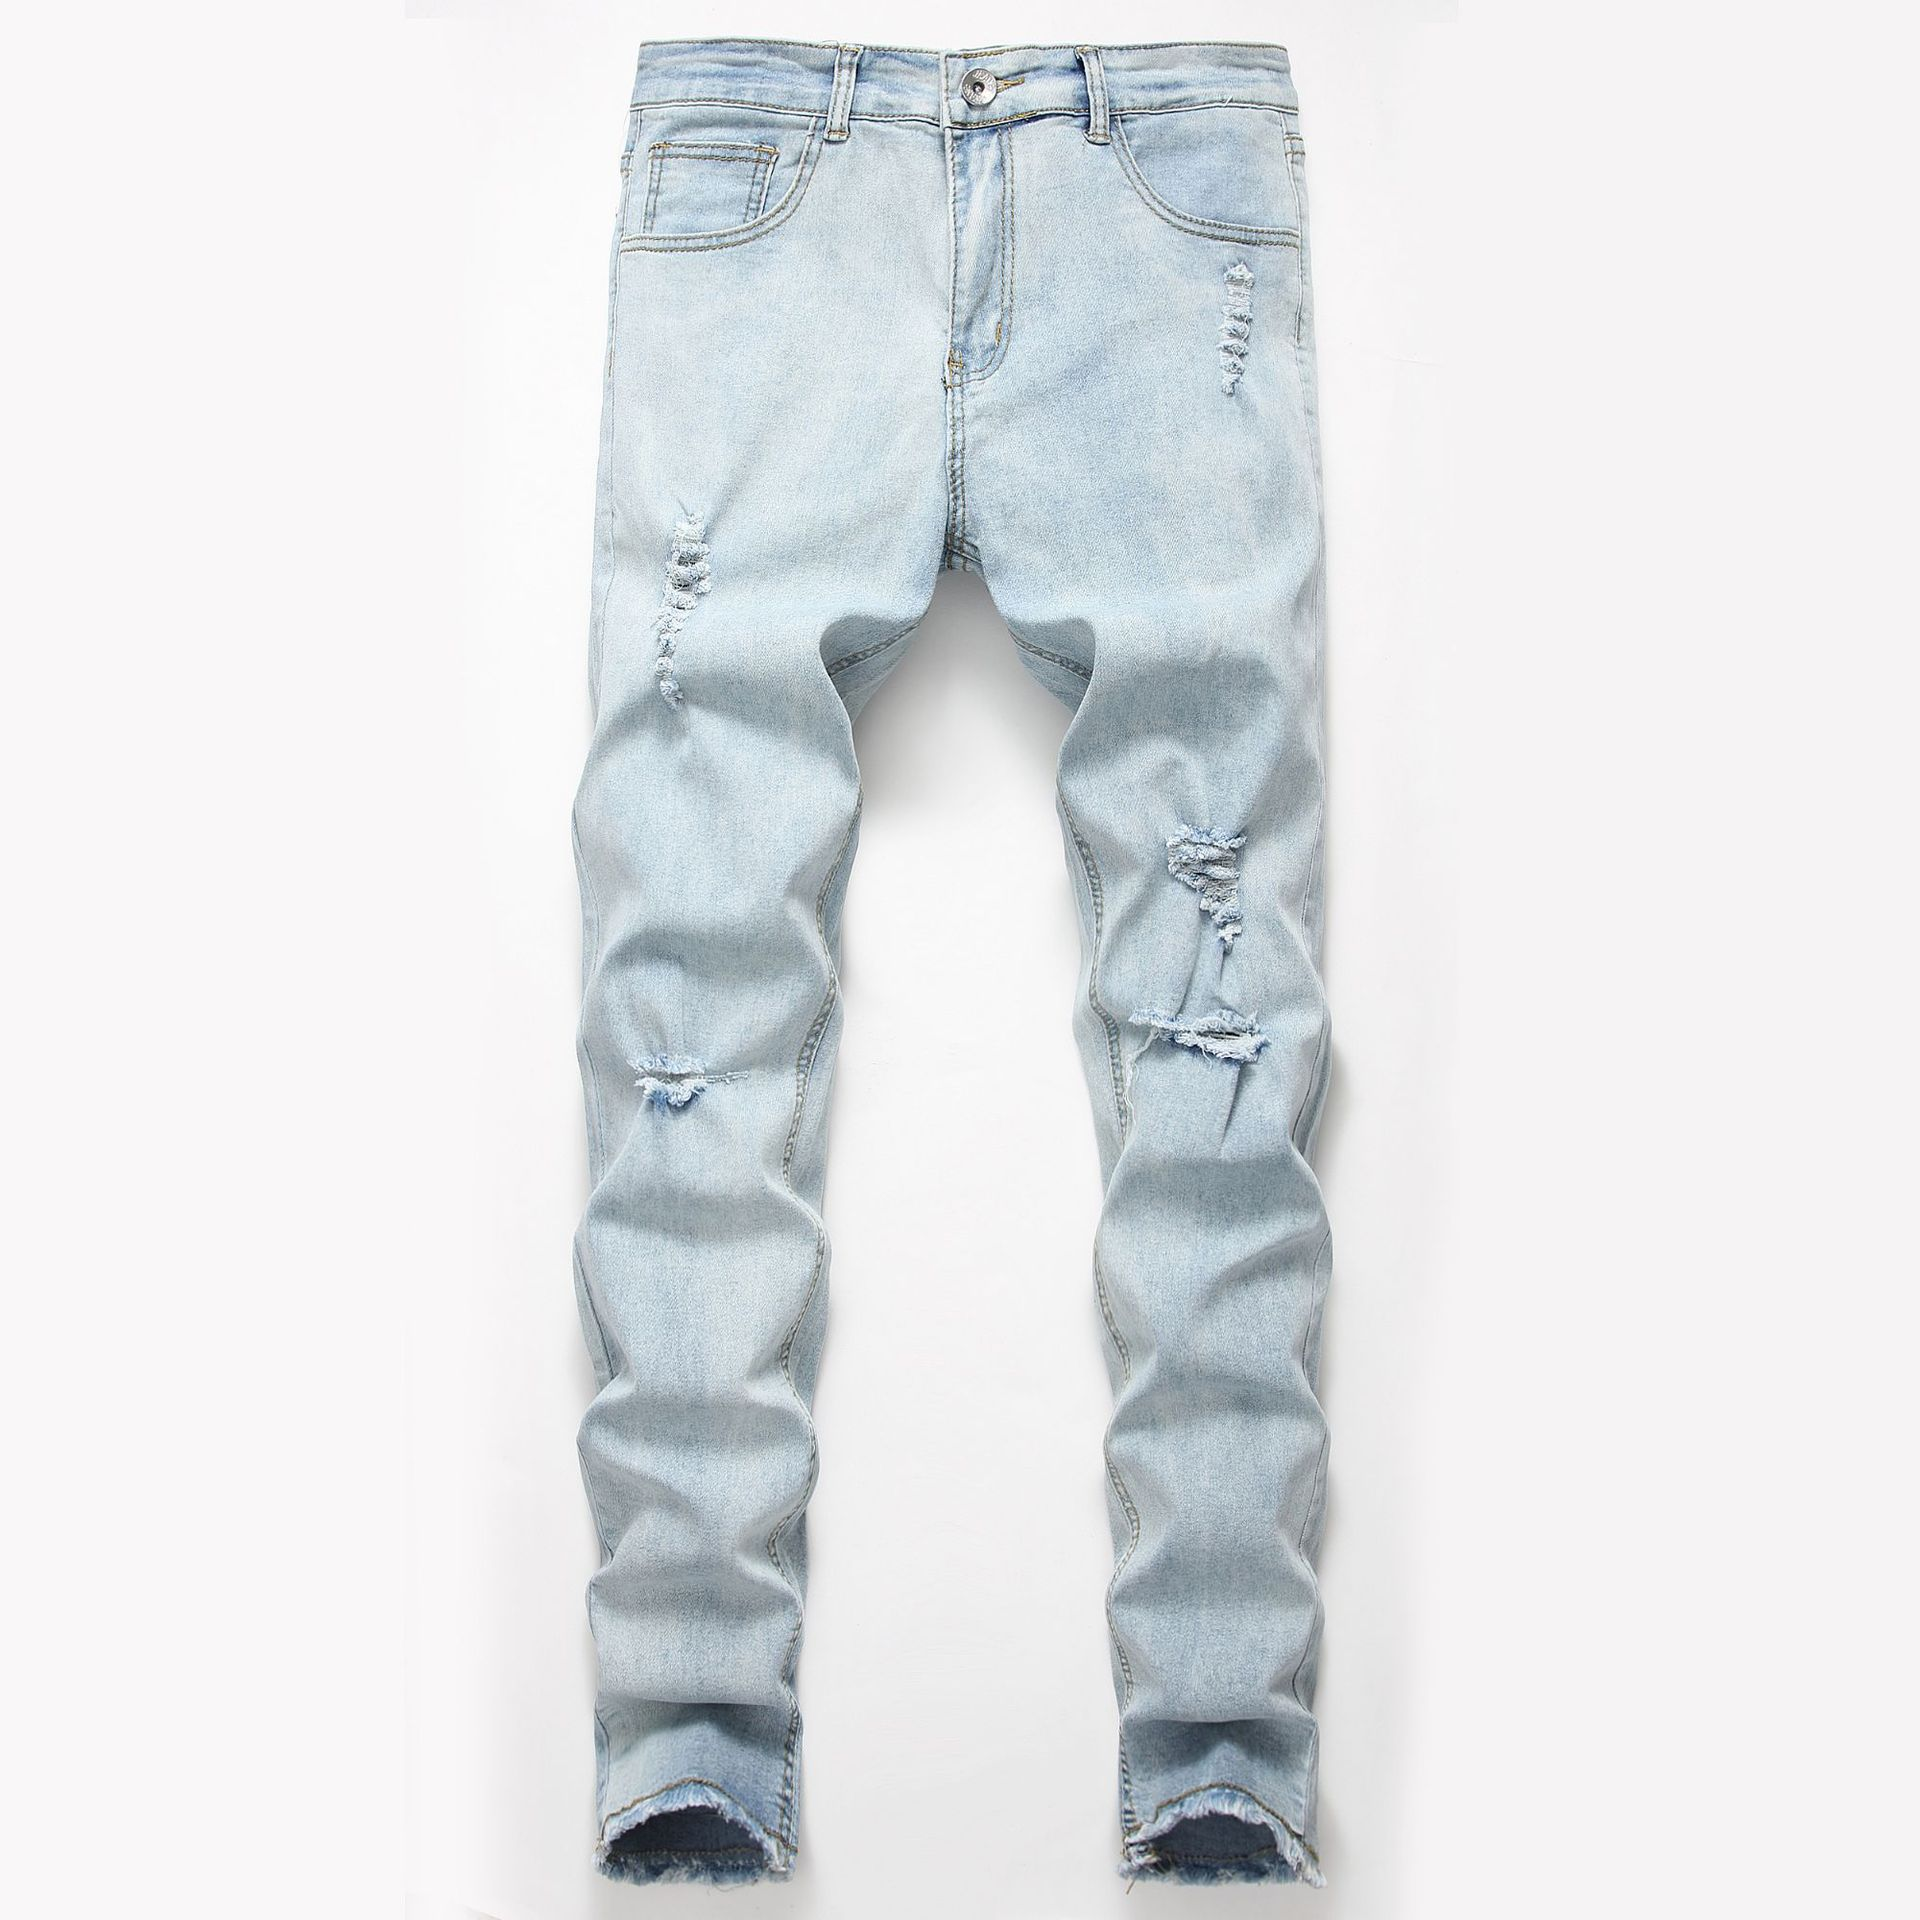 2019 New Style Europe And America Men's Jeans New Style With Holes Hot Selling Men's Trousers Skinny Pants